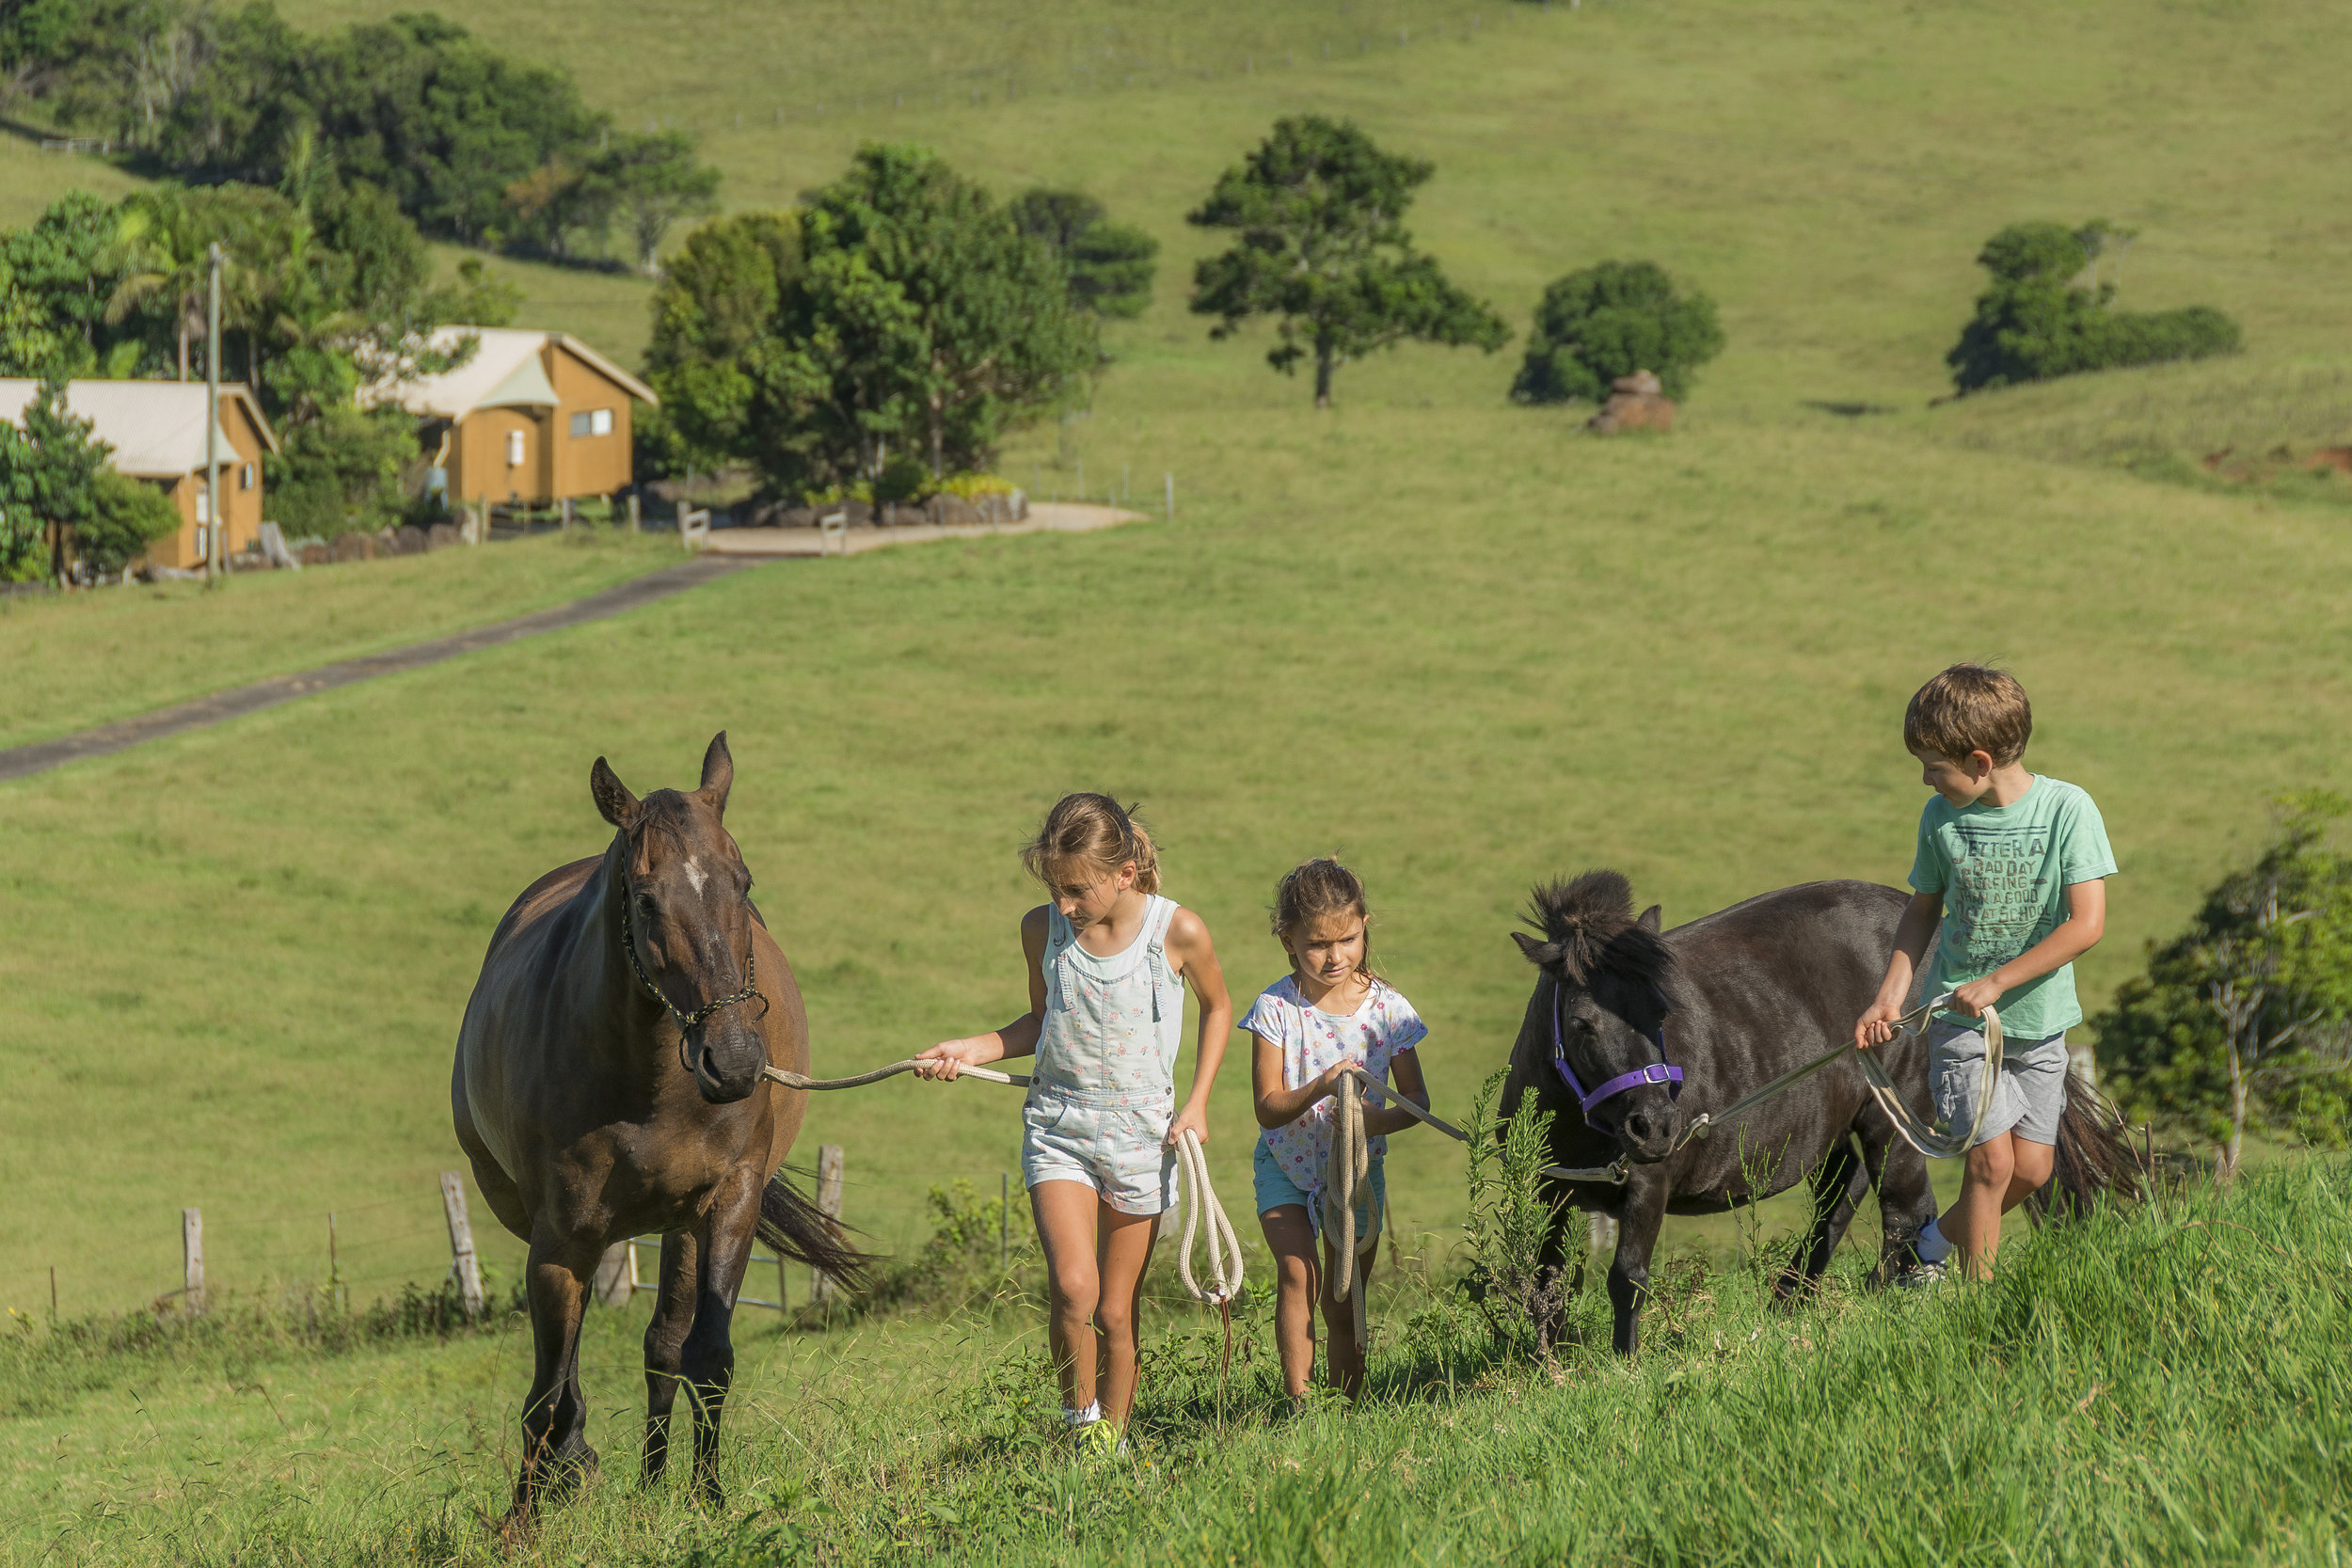 Visit My Farm Australia - Byron Bay Farmstay, Byron Bay NSW